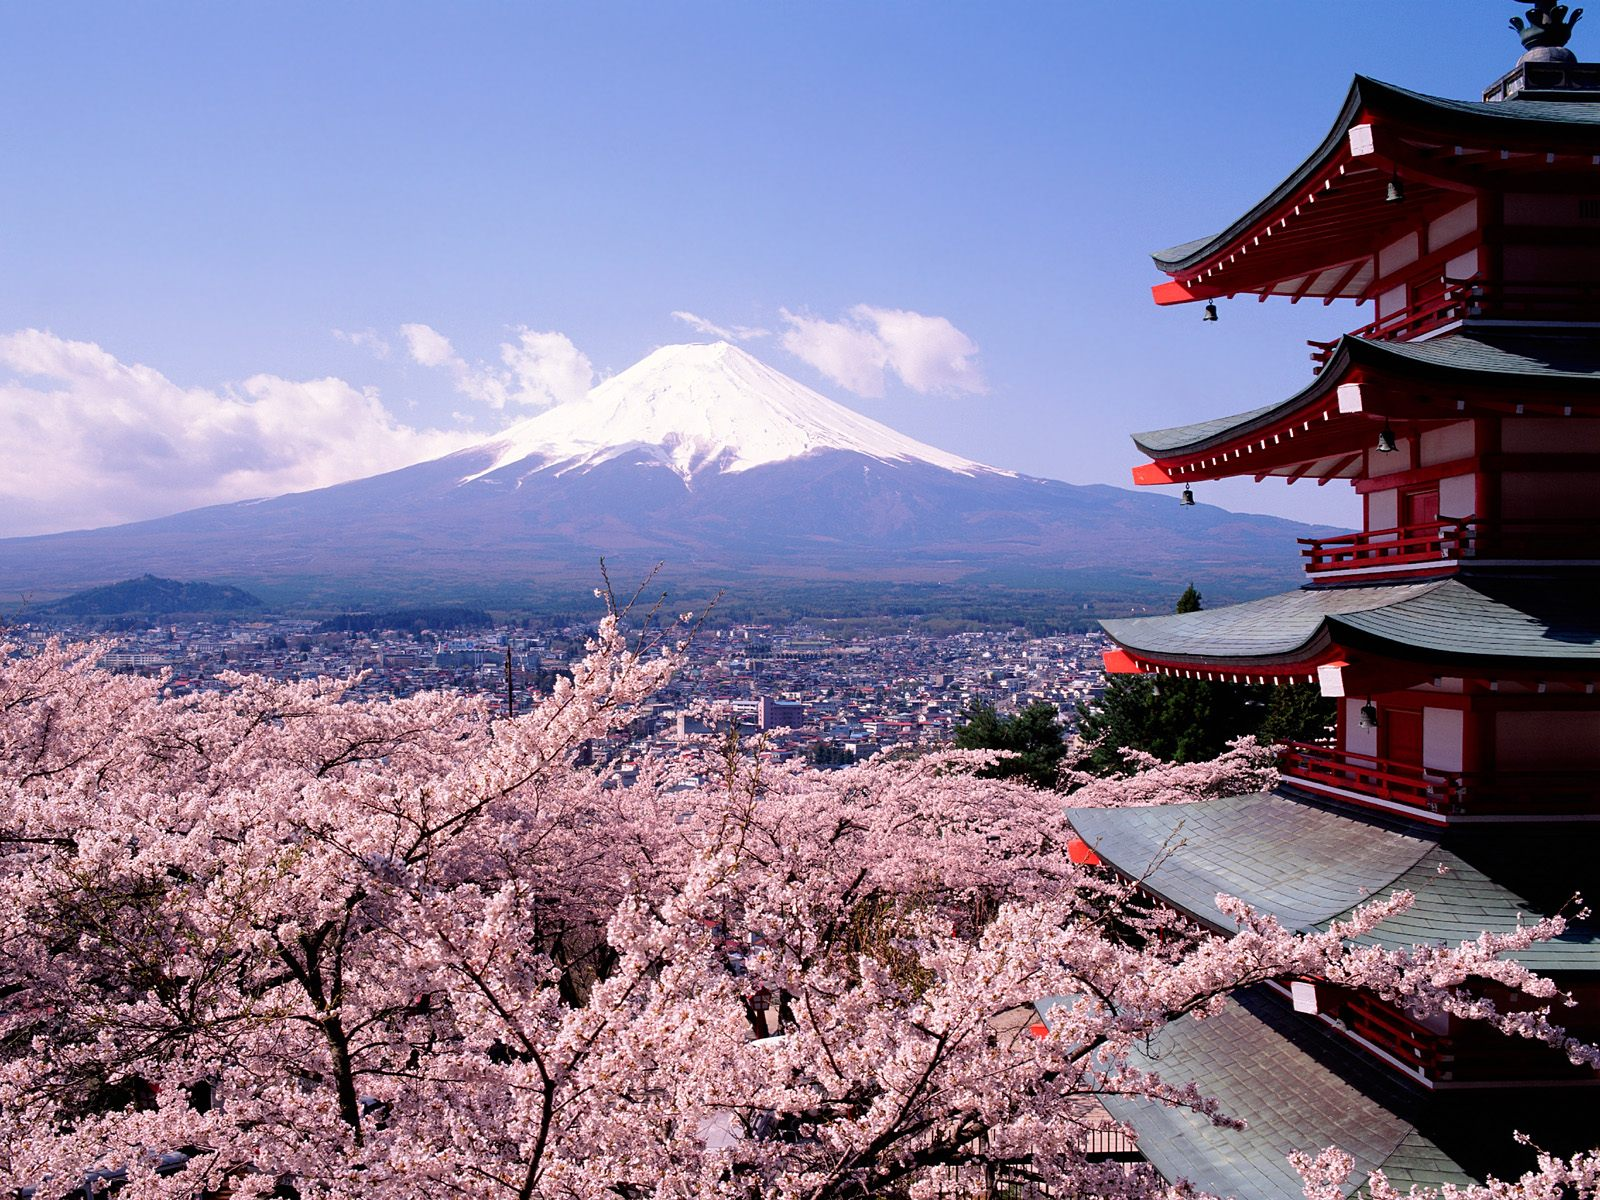 JAPAN LANDSCAPE - Japan Wallpaper (419442) - Fanpop